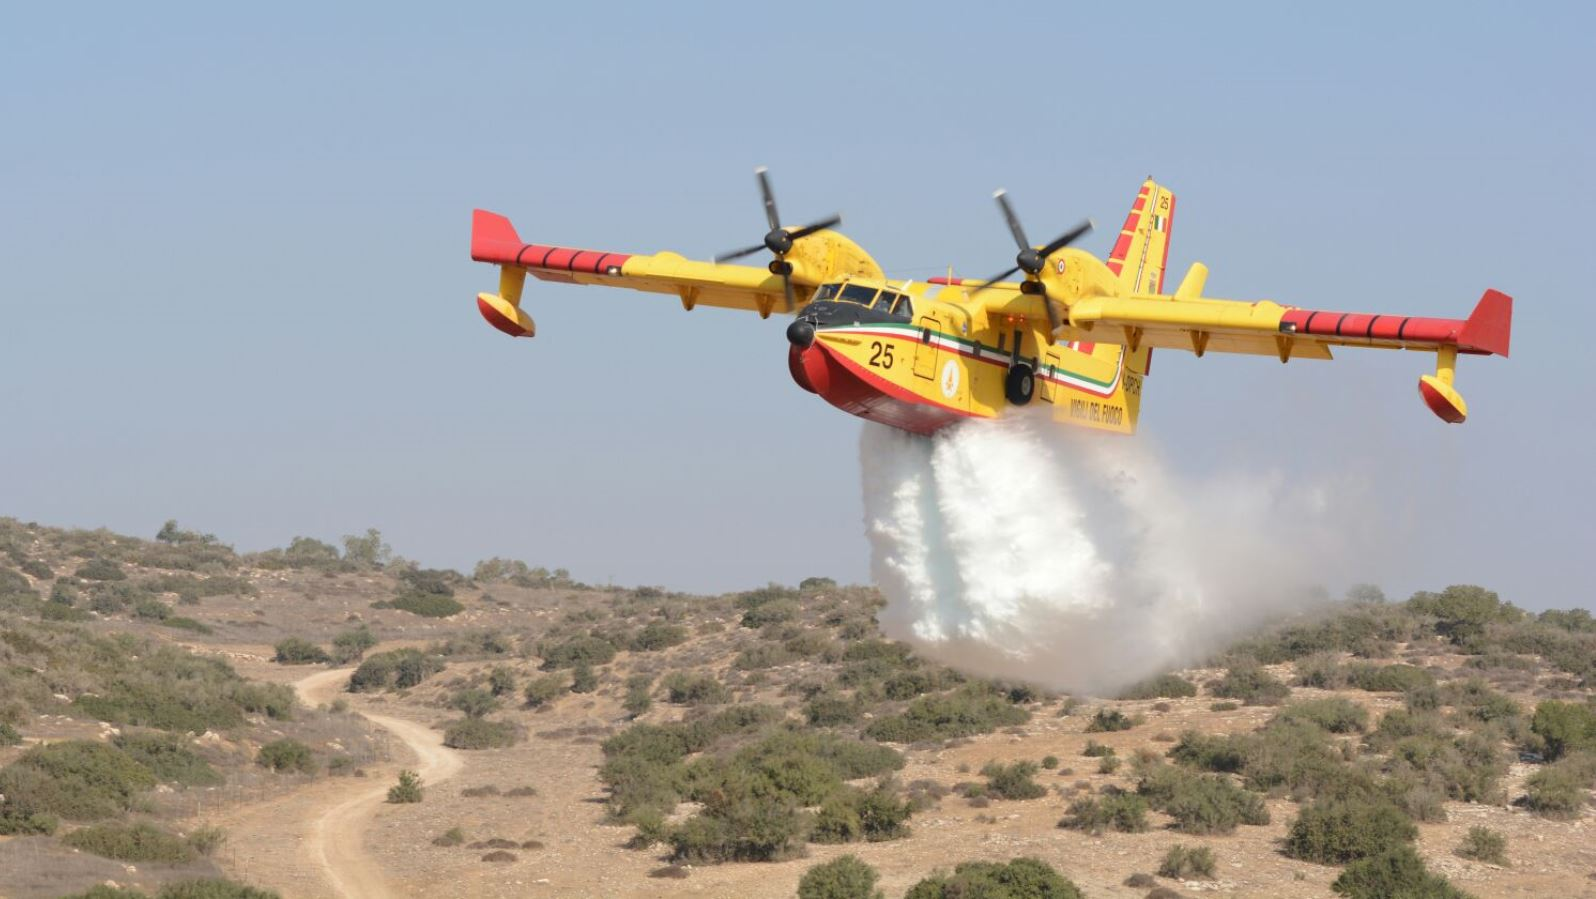 A firefighting plane from Italy participating in the joint forest fire drill, October 25, 2017. Photo courtesy of Israel Firefighting and Rescue Authority